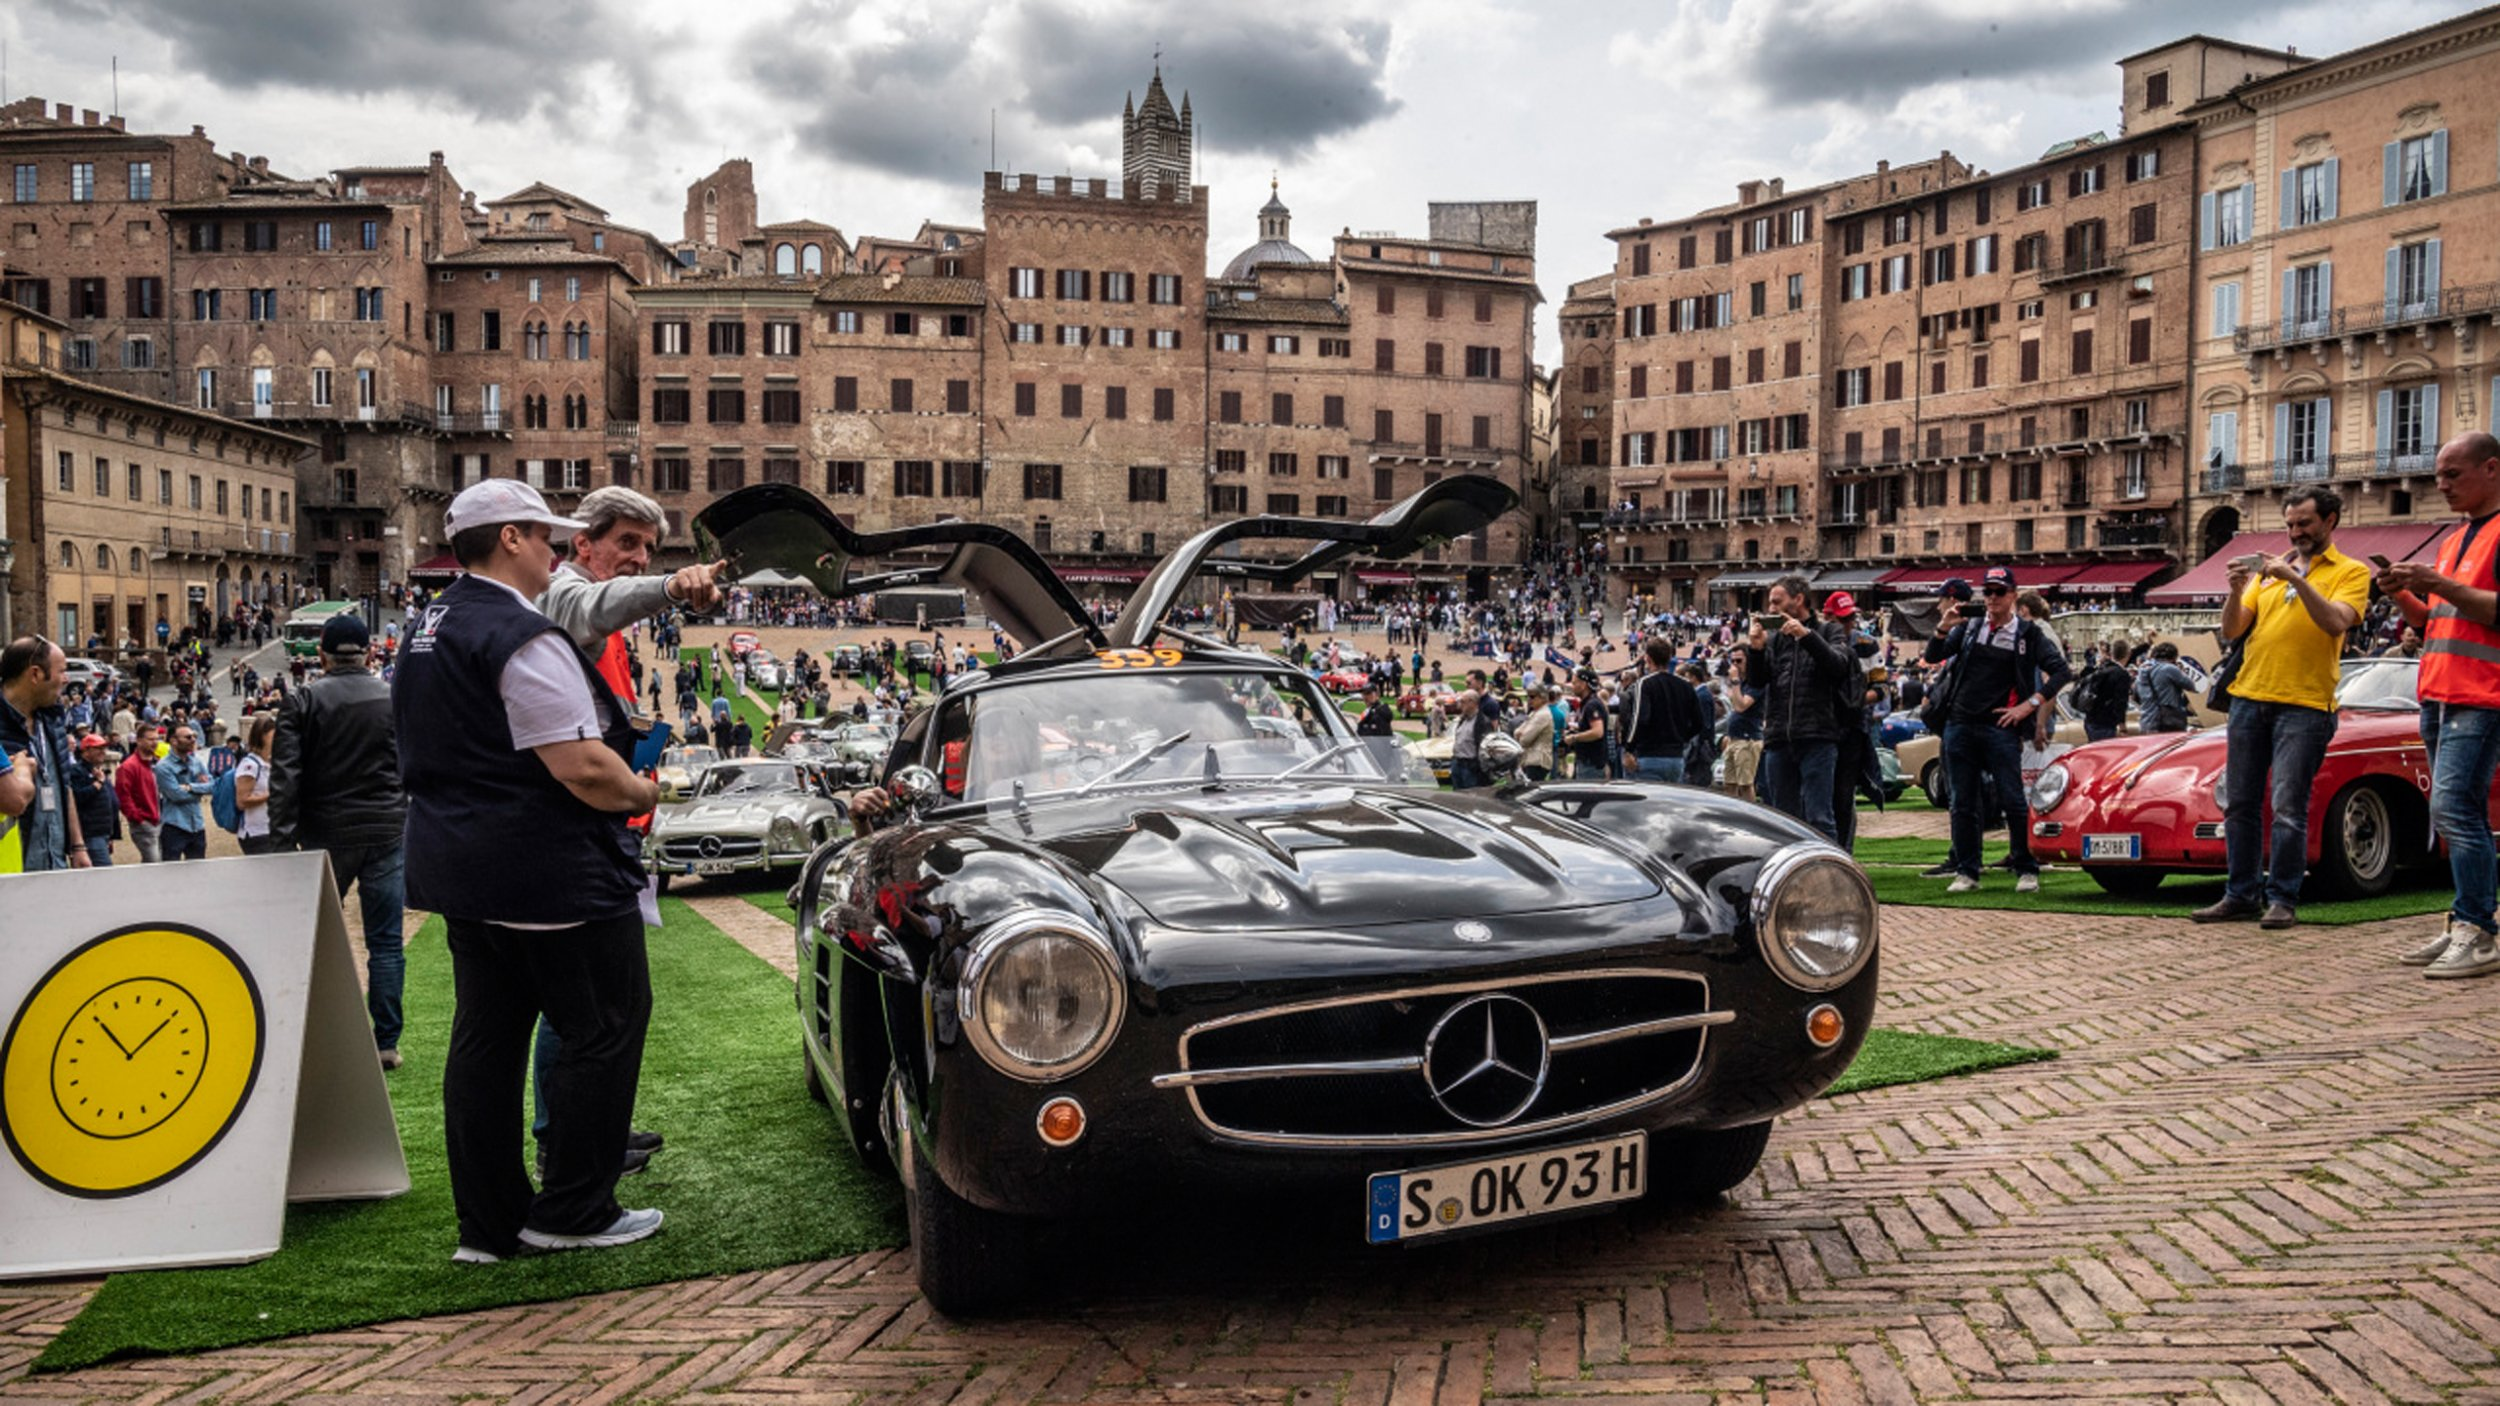 https://cloud.mb-lounge.com/files/HQ-Events/Classic/Oldtimer%20Events/event-calendar-mille-miglia-2560x1440.jpg